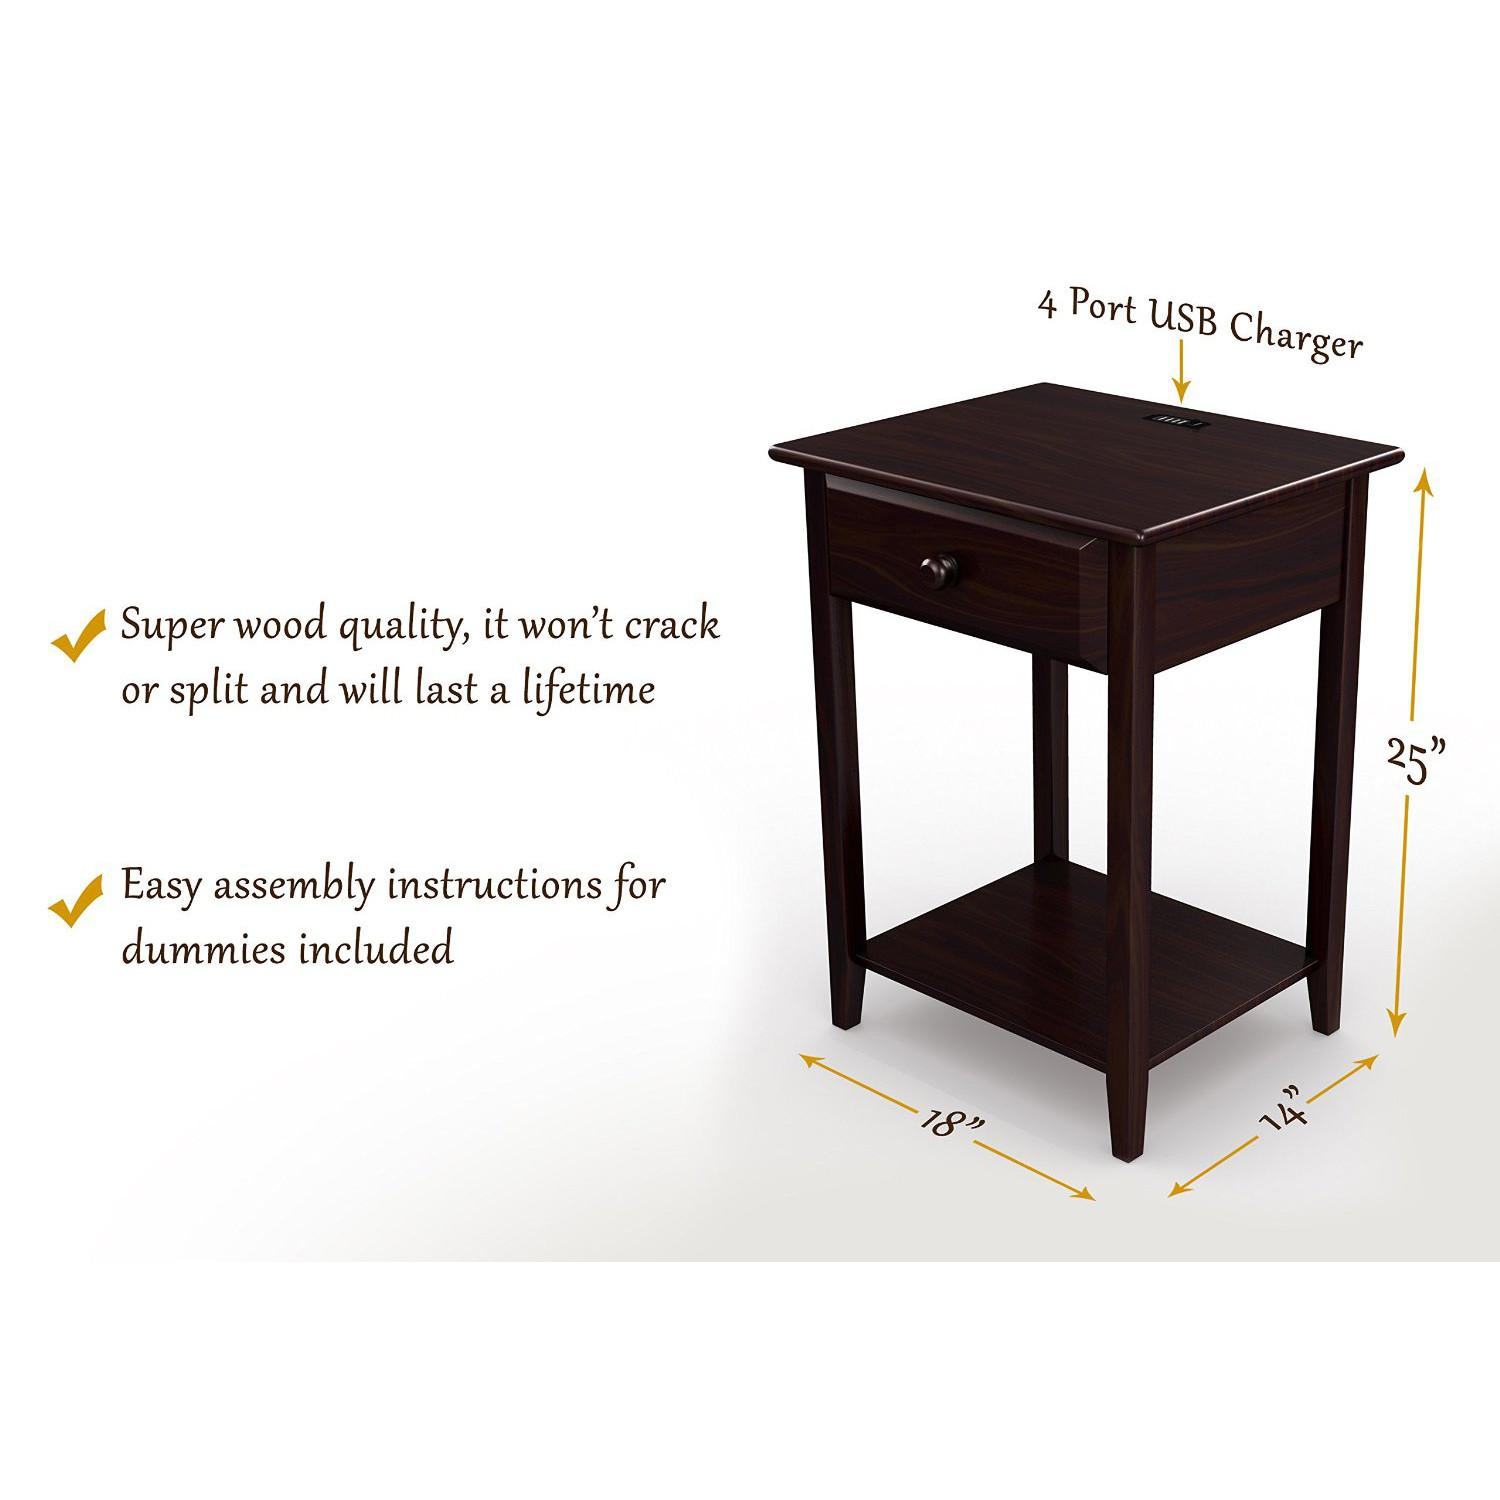 khols coupons probably outrageous real vanderbilt nightstand end stony edge night stand accent table with usb port espresso ports view larger candle centerpiece ideas rustic